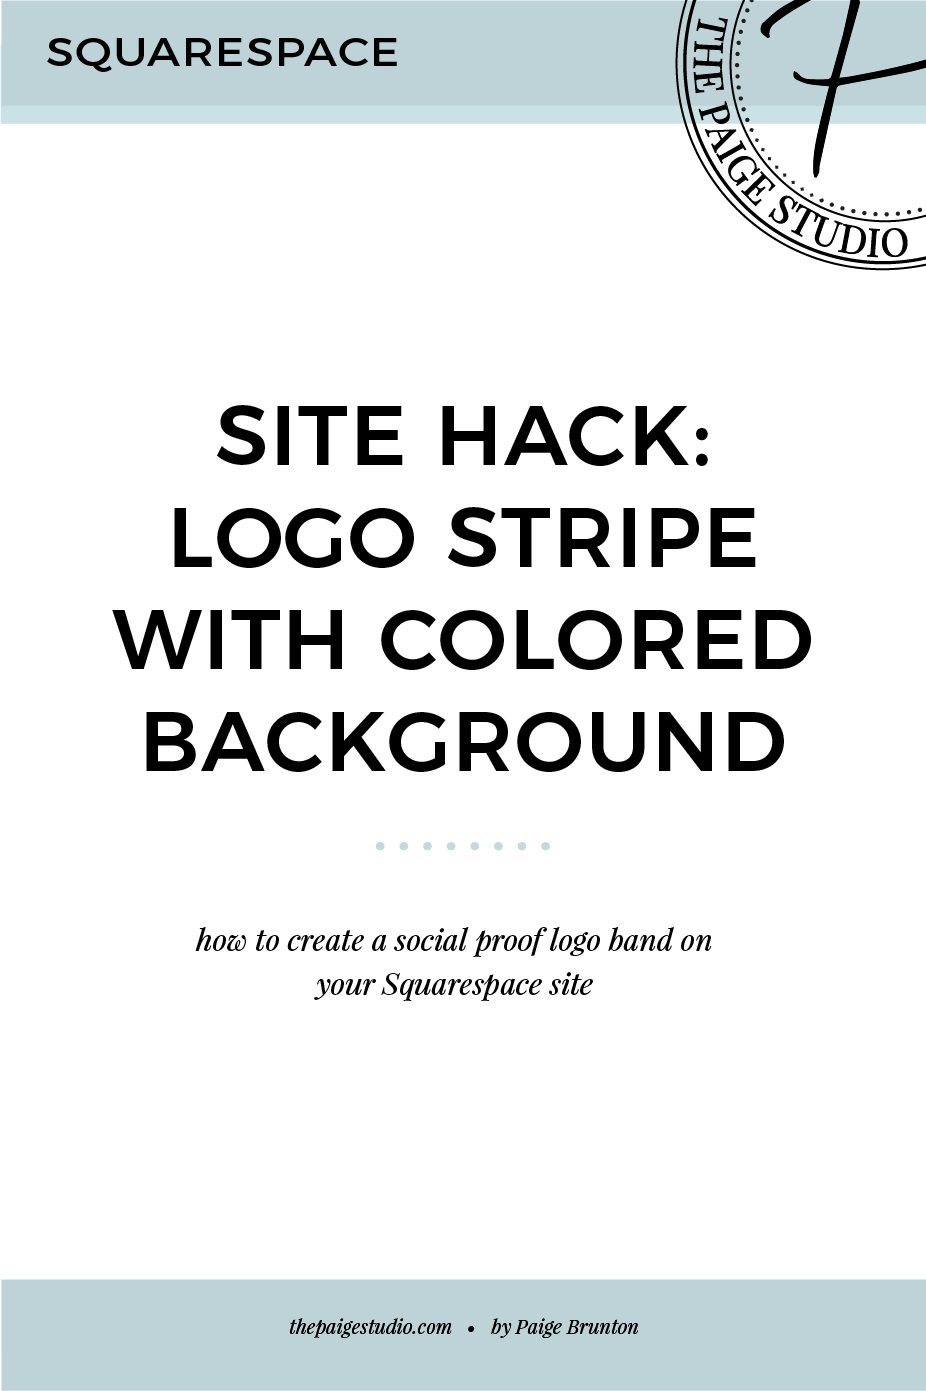 Squarespace hack: How to build a colored page section with